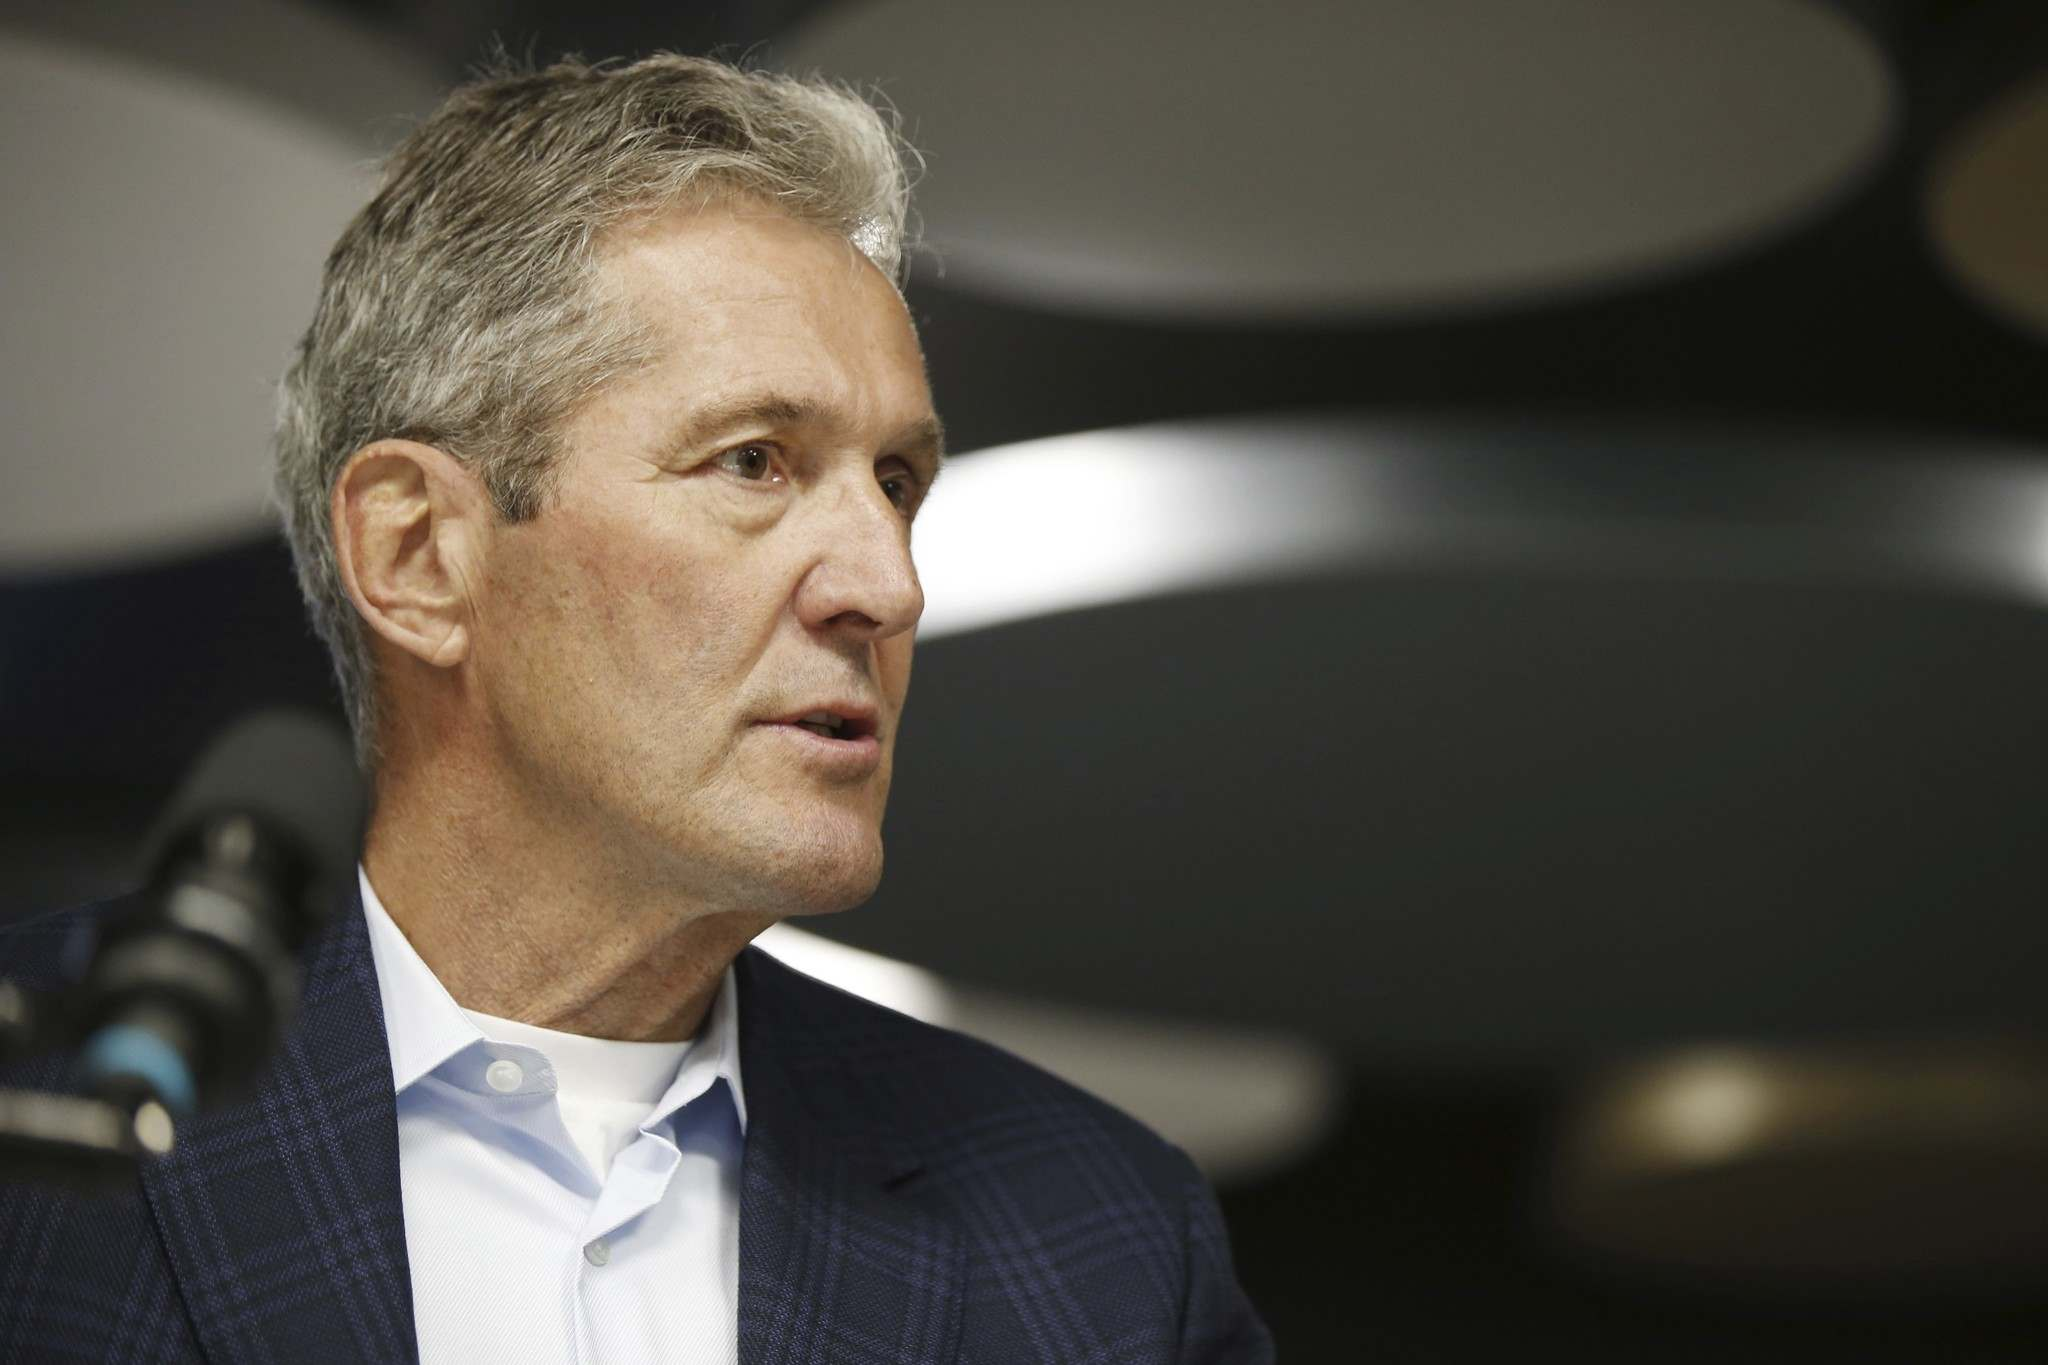 In a news release issued Monday by the Progressive Conservative Party of Manitoba caucus, Pallister said he gave written notice to house Speaker Myrna Driedger informing her of his immediate resignation. (John Woods / Canadian Press files) </p>